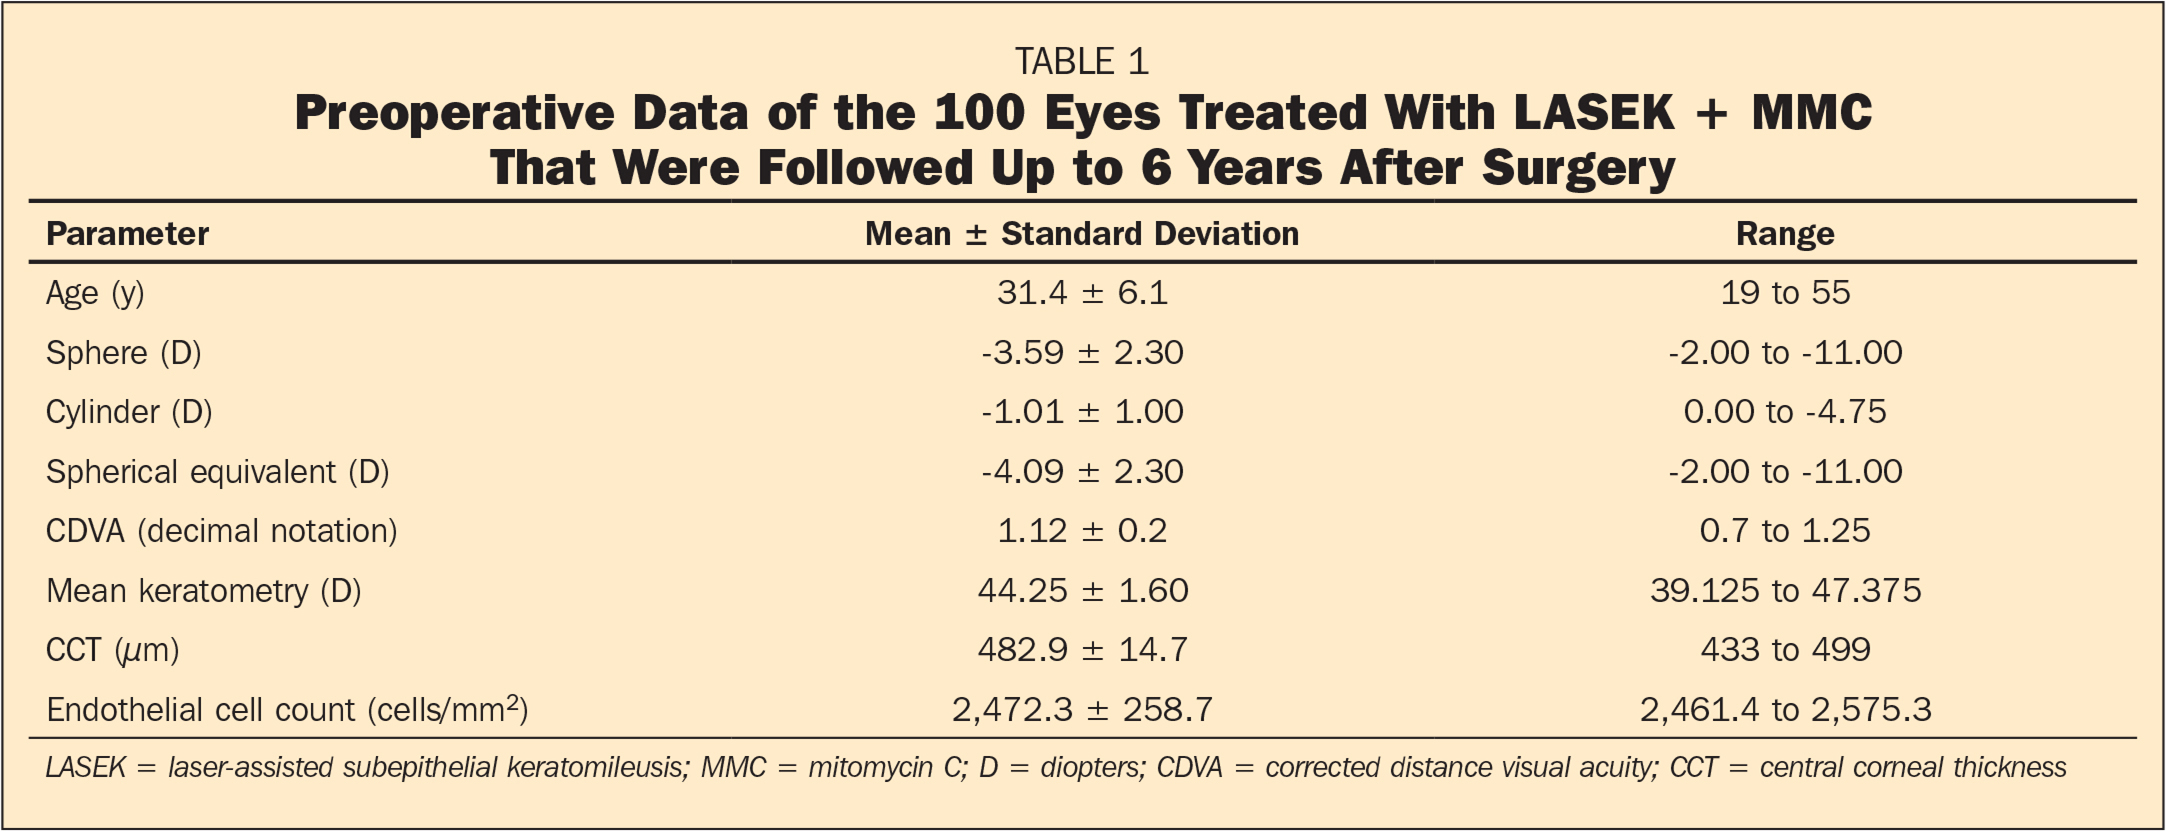 Preoperative Data of the 100 Eyes Treated With LASEK + MMC That Were Followed Up to 6 Years After Surgery